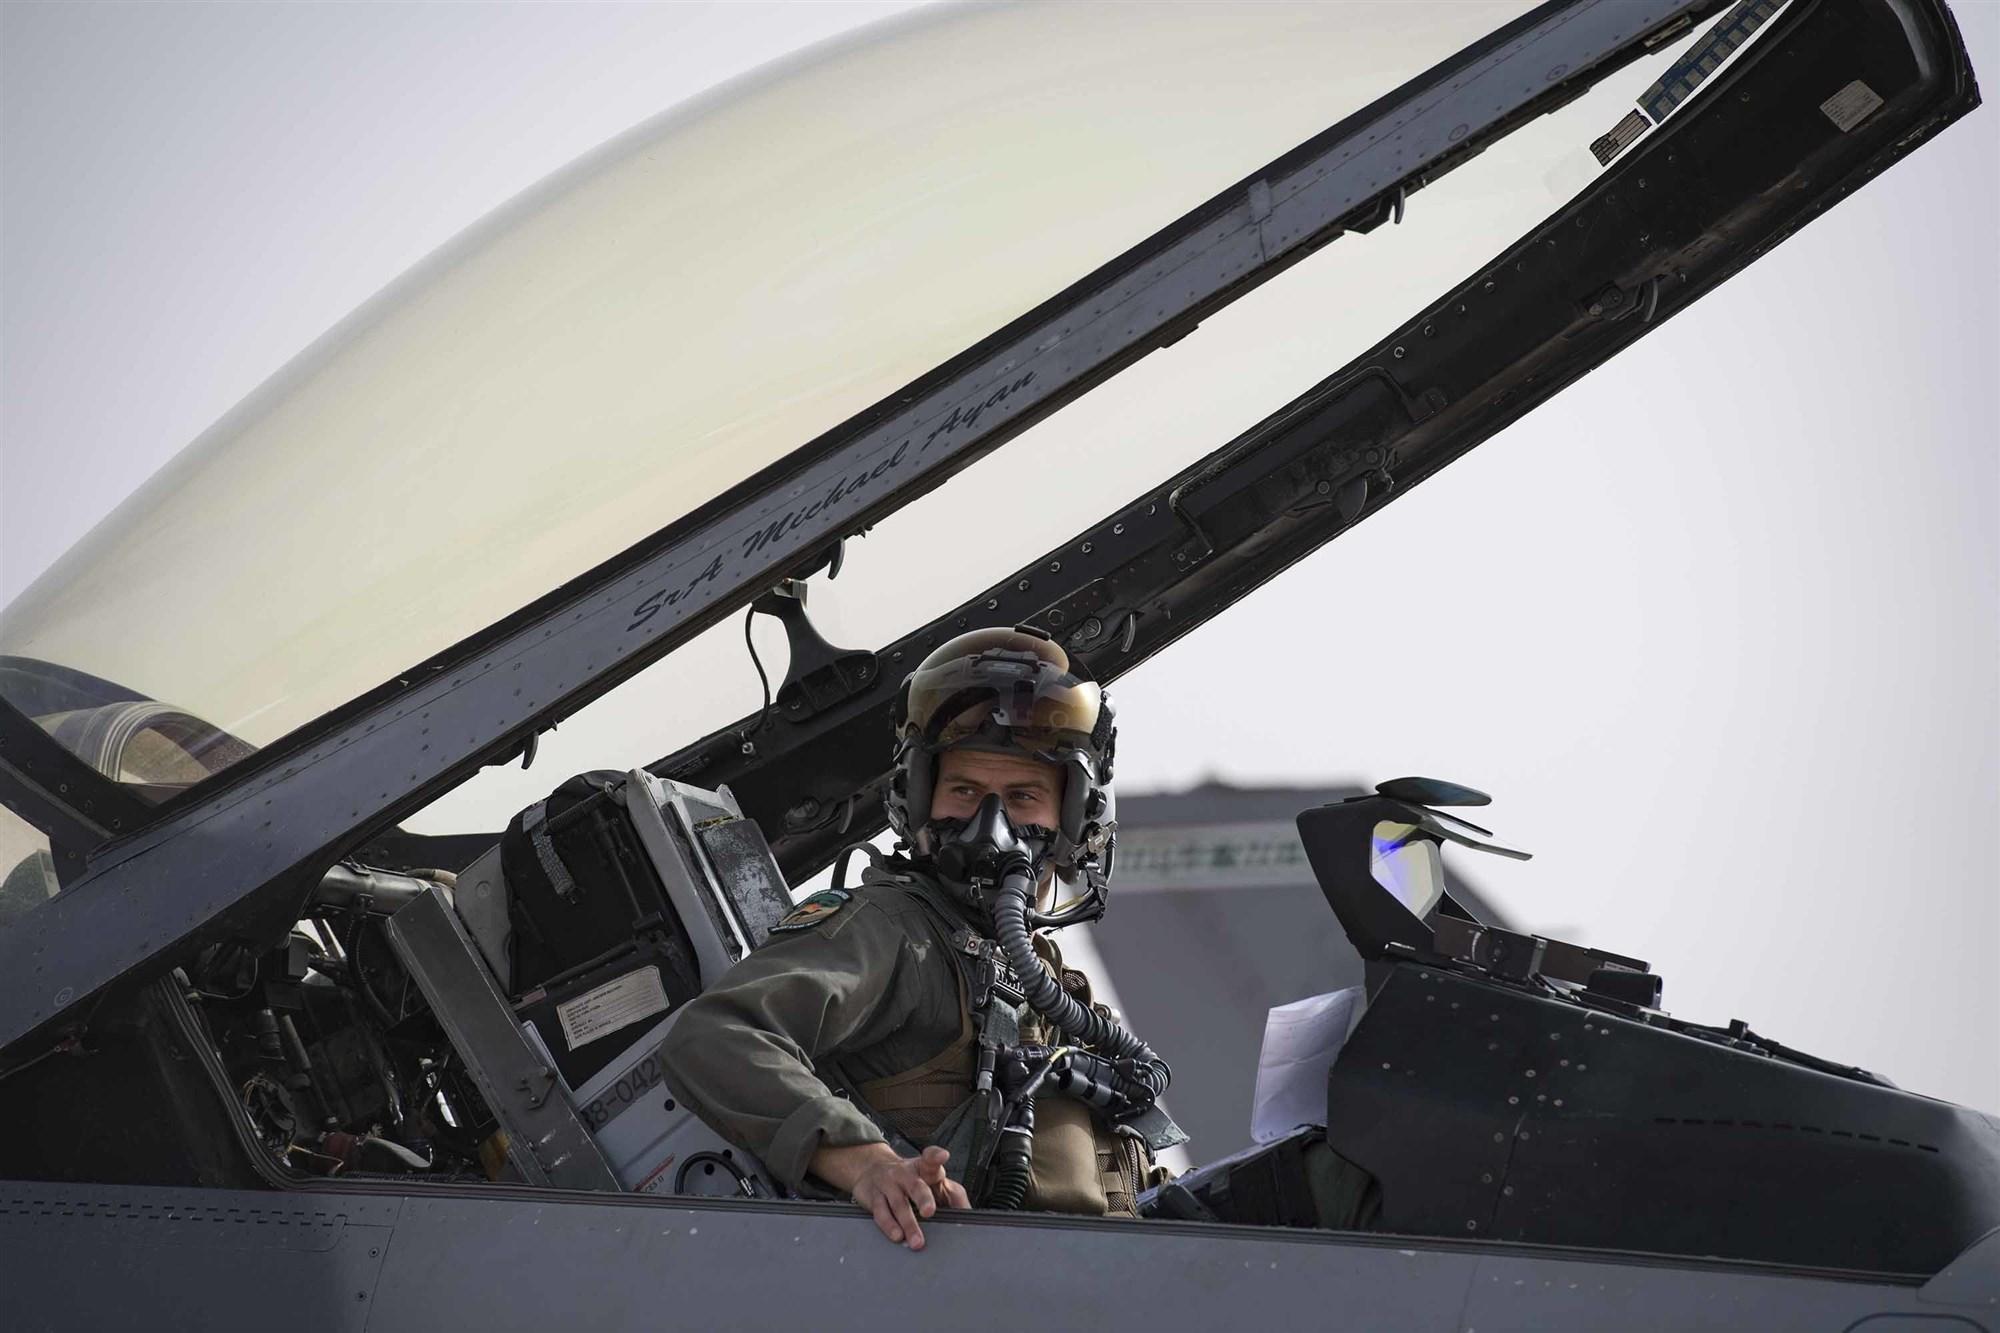 U.S. Air Force 1st Lt. Quincey Watts, a 555th Expeditionary Fighter Squadron F-16C Fighting Falcon pilot, exits his aircraft during exercise African Lion 2019 at Ben Guerir Air Base, Morocco, March 25, 2019. The exercise was designed to strengthen military relationships with allies and partners while increasing interoperability. African Lion 2019 is a Chairman of the Joint Chiefs of Staff-sponsored, U.S. Africa Command-scheduled, U.S. Marine Corps Forces Europe and Africa-led, joint and combined exercise conducted in the Kingdom of Morocco with a spoke in Tunisia, and armed forces participants in from Canada, France, Senegal, Spain, and the United Kingdom. (U.S. Air Force photo by Staff Sgt. Ceaira Tinsley)